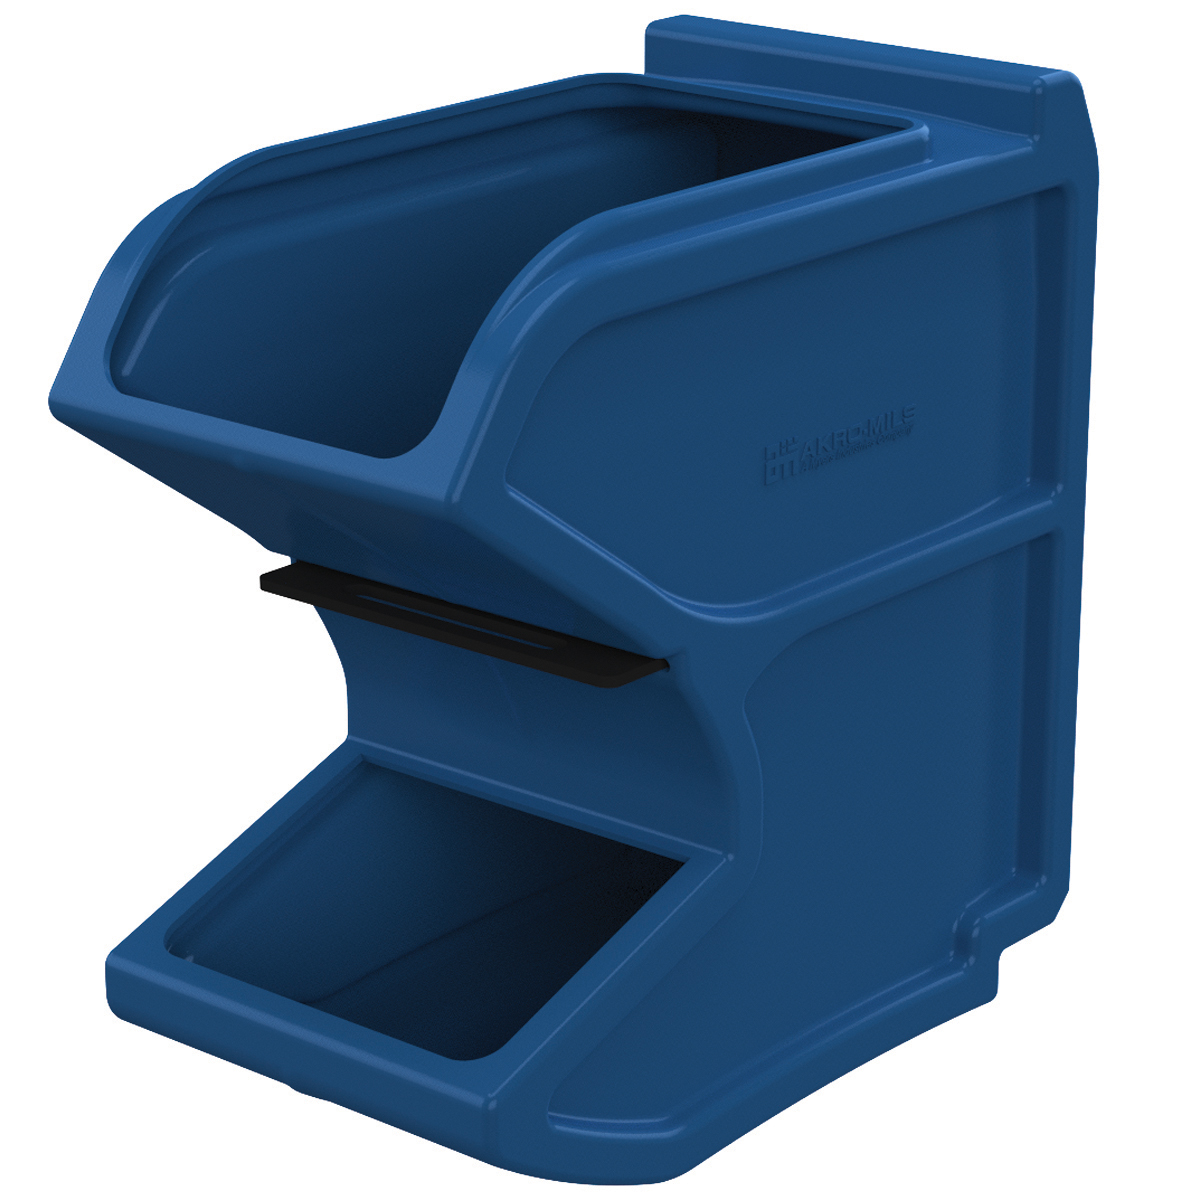 Easy Flow Gravity Hopper 16 x 8-1/4 x 16, Blue w/ Divider (31620BLUE).  This item sold in carton quantities of 1.